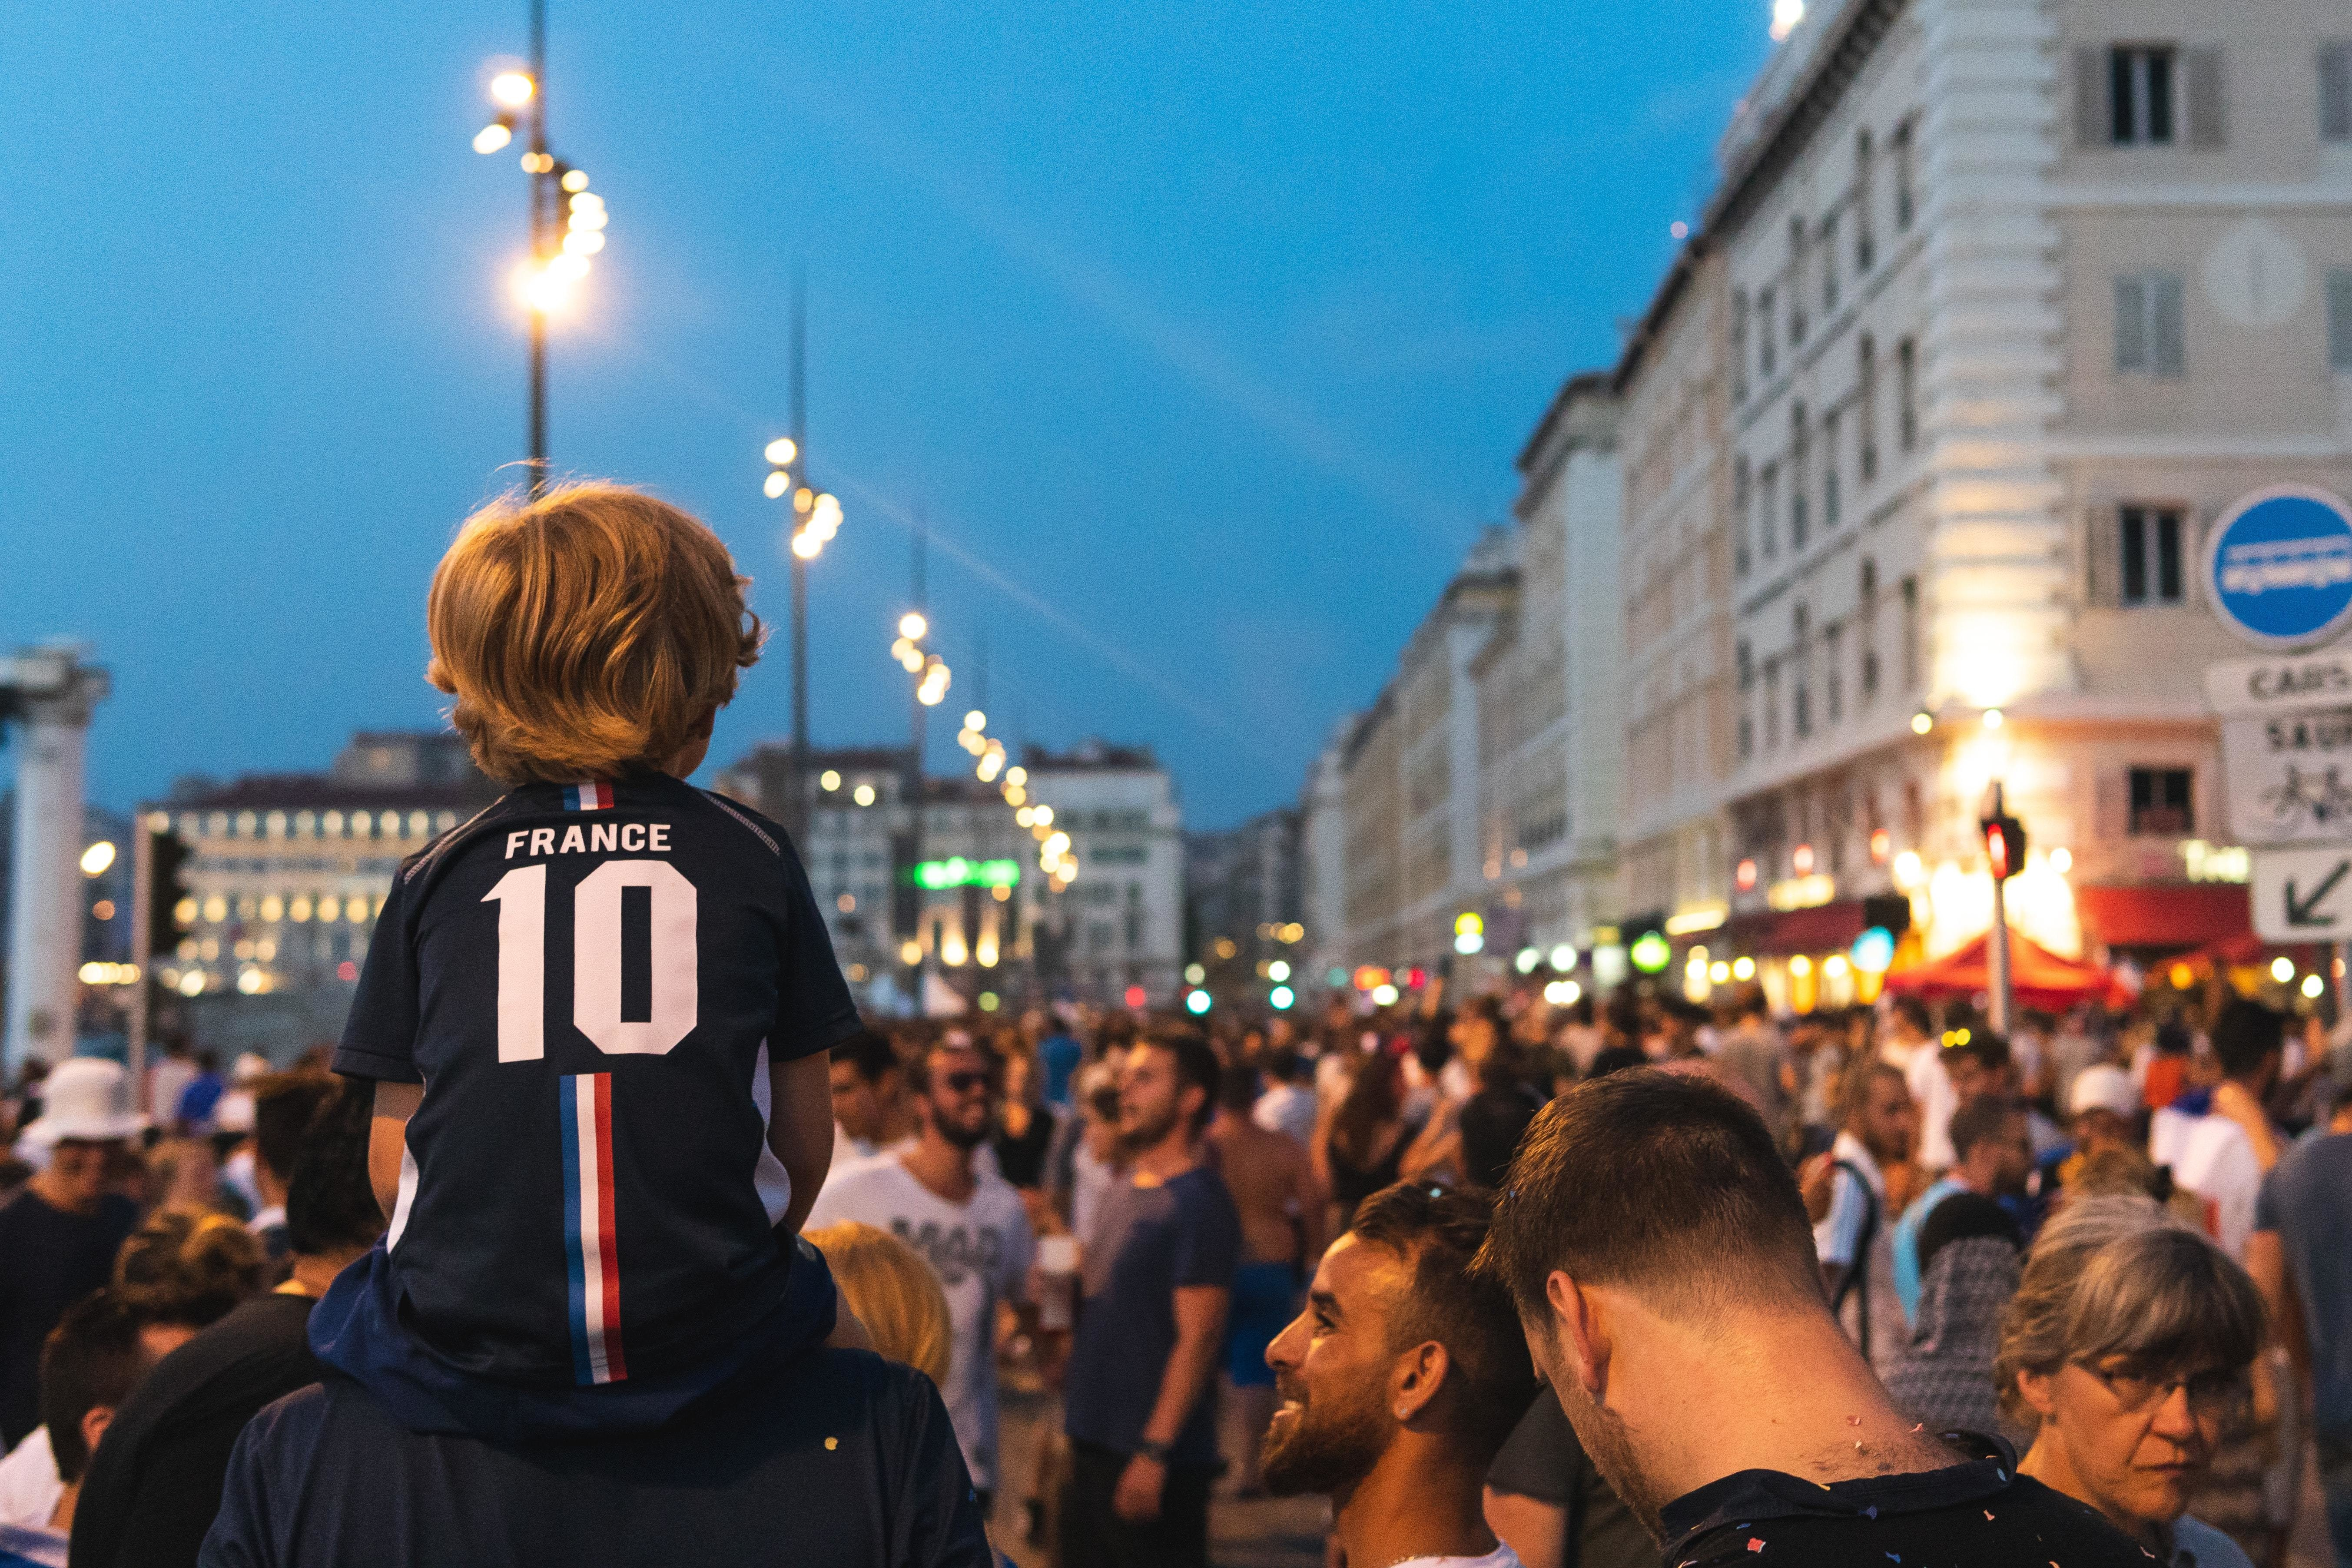 a boy with a France sports shirts sits on an adults shoulders looking out to a crowd